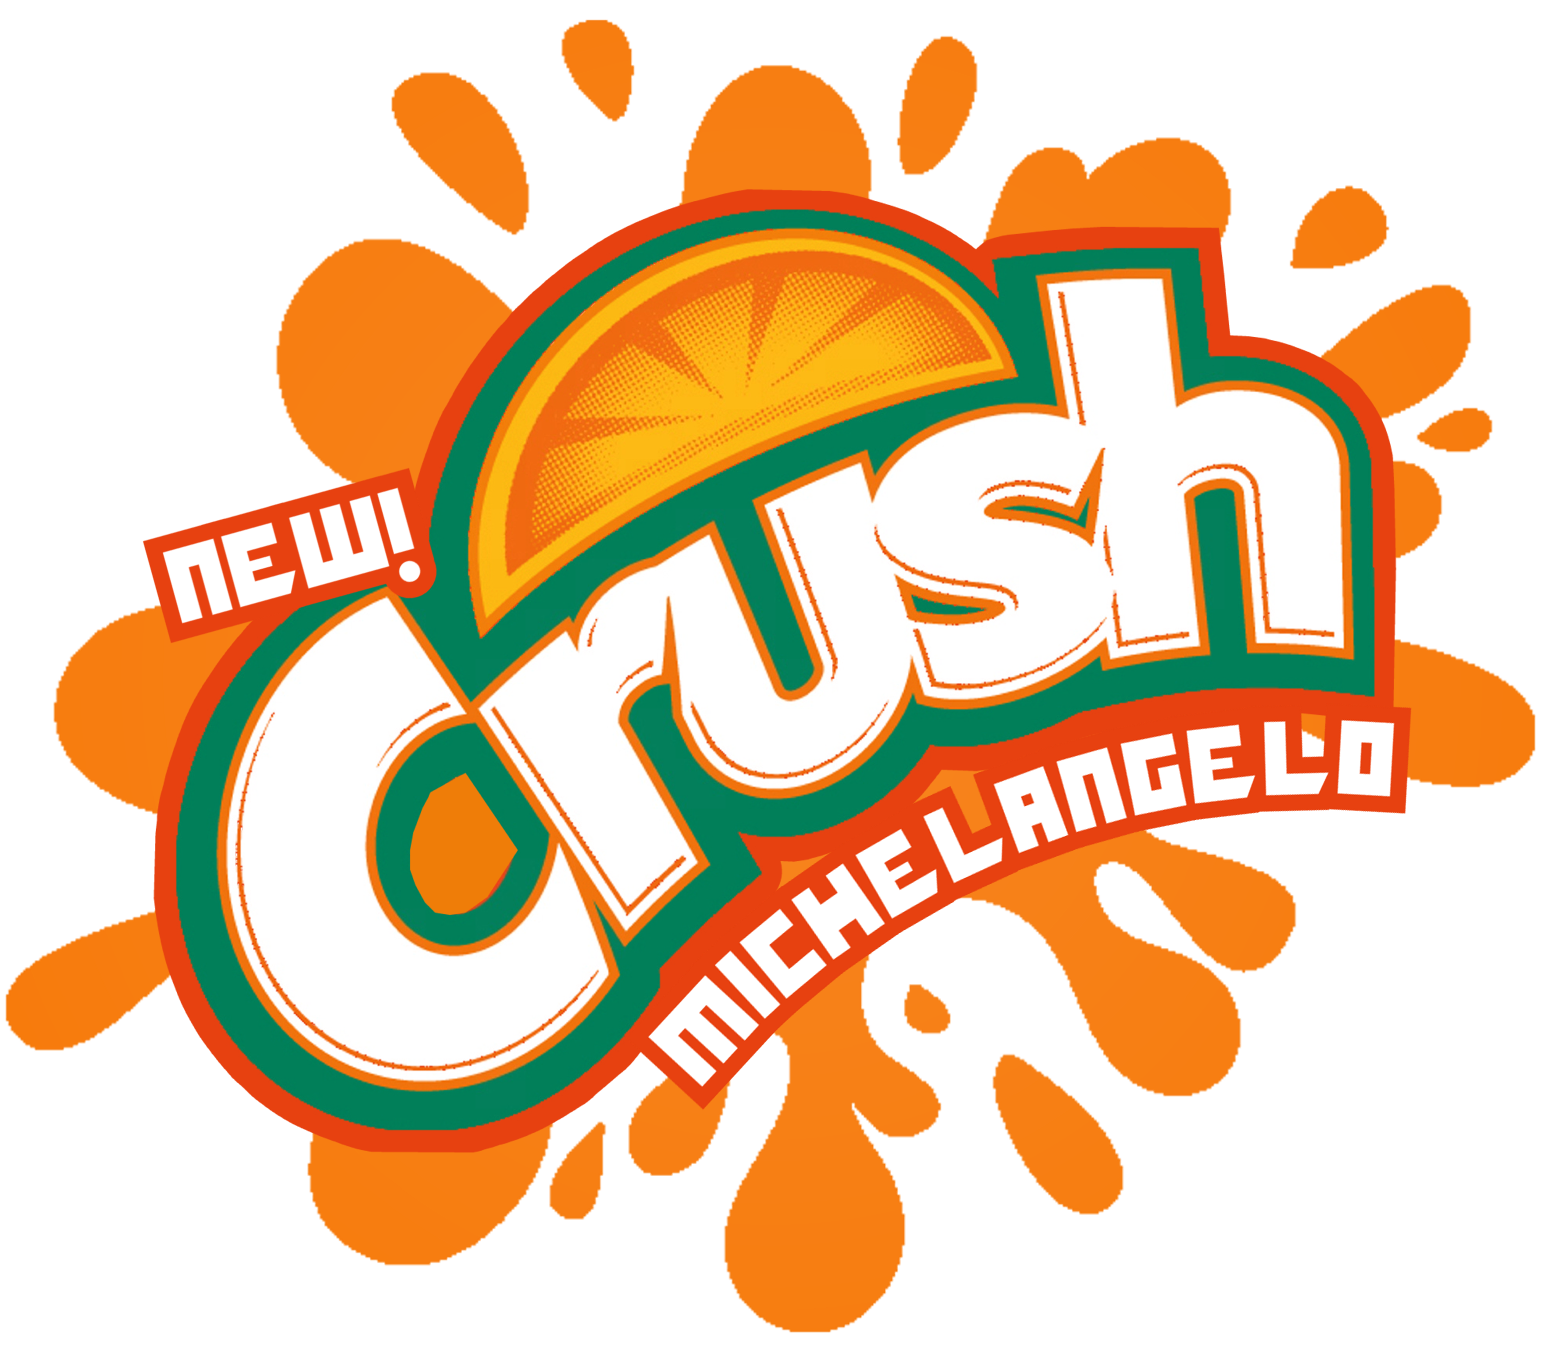 orange crush logos rh logolynx com orange crush logo patch orange crush softball logo